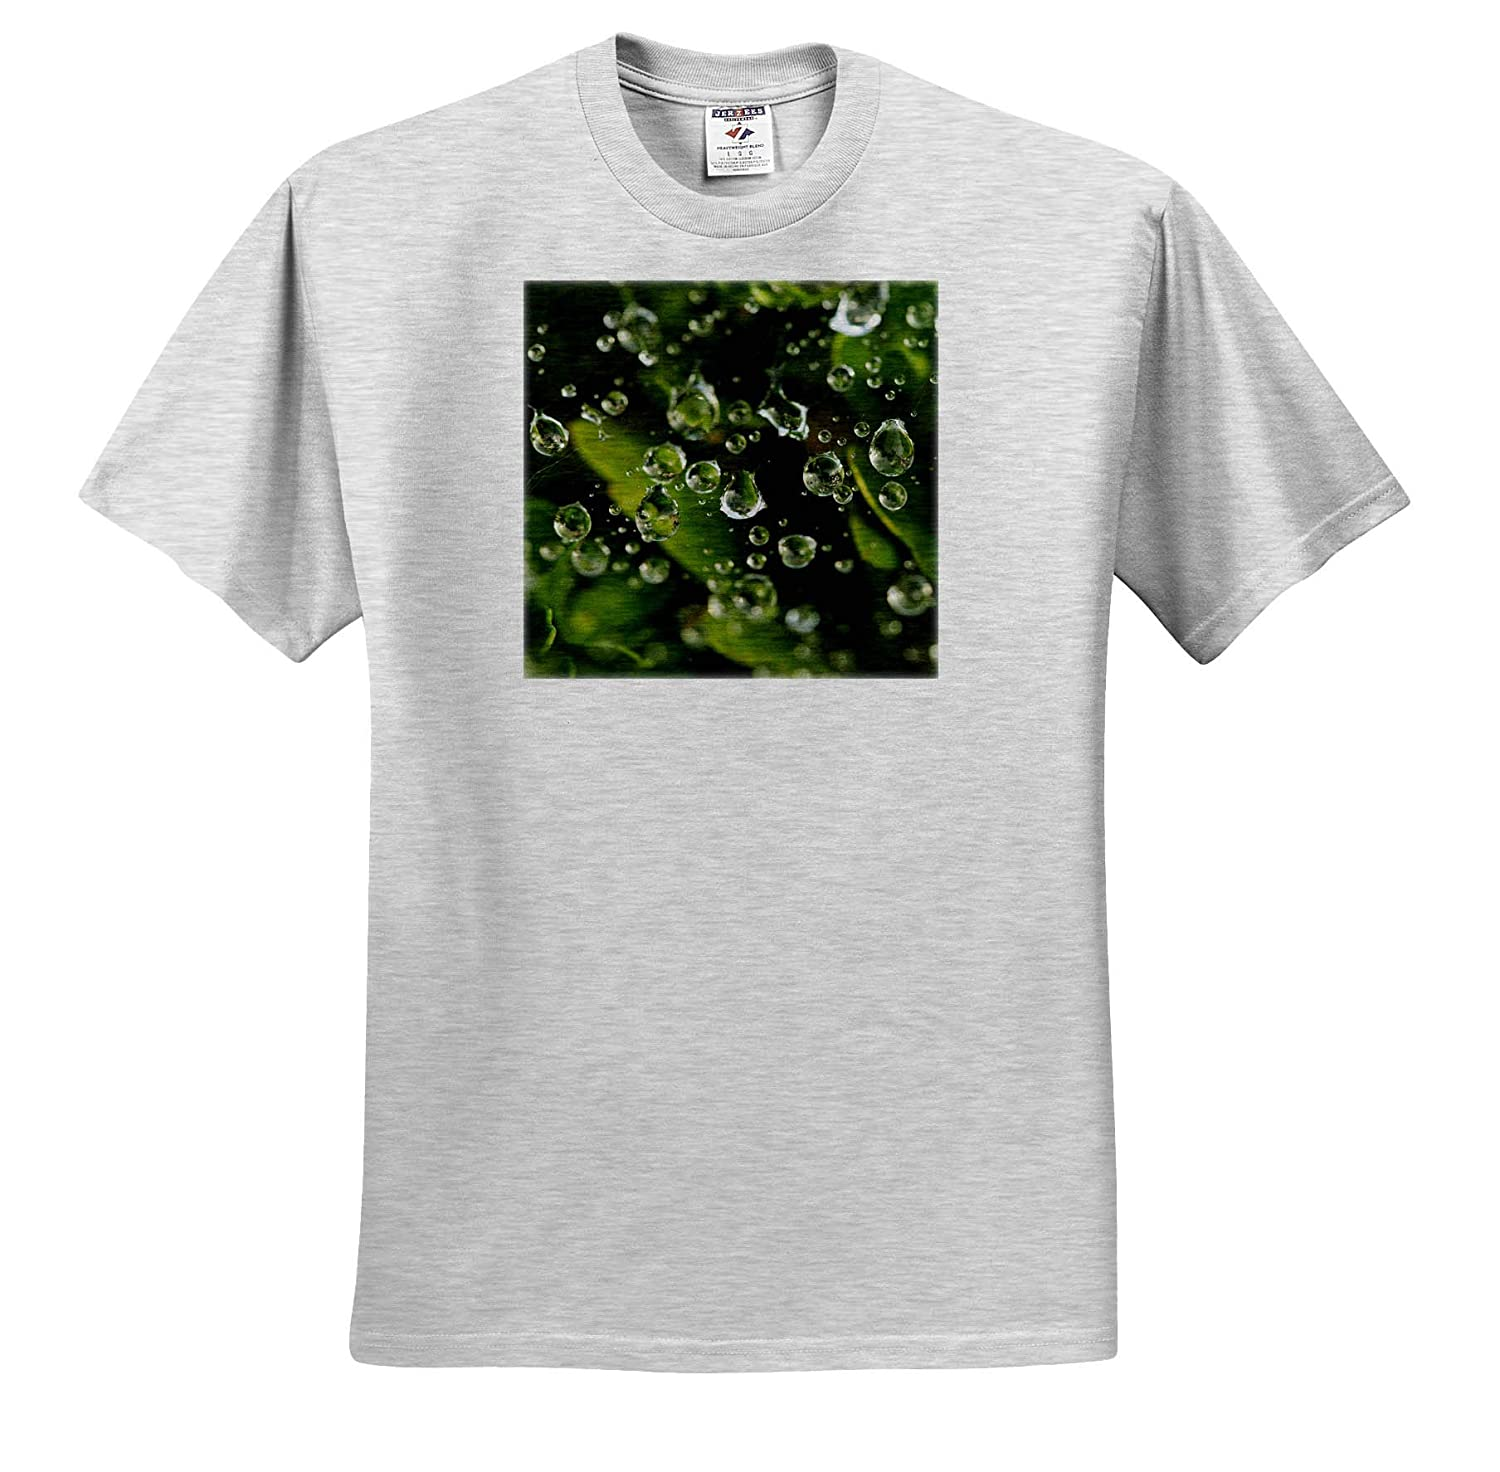 ts/_319065 Nature 3dRose Stamp City Macro Photograph of Raindrops on a Spiderweb Over Green Leaves - Adult T-Shirt XL